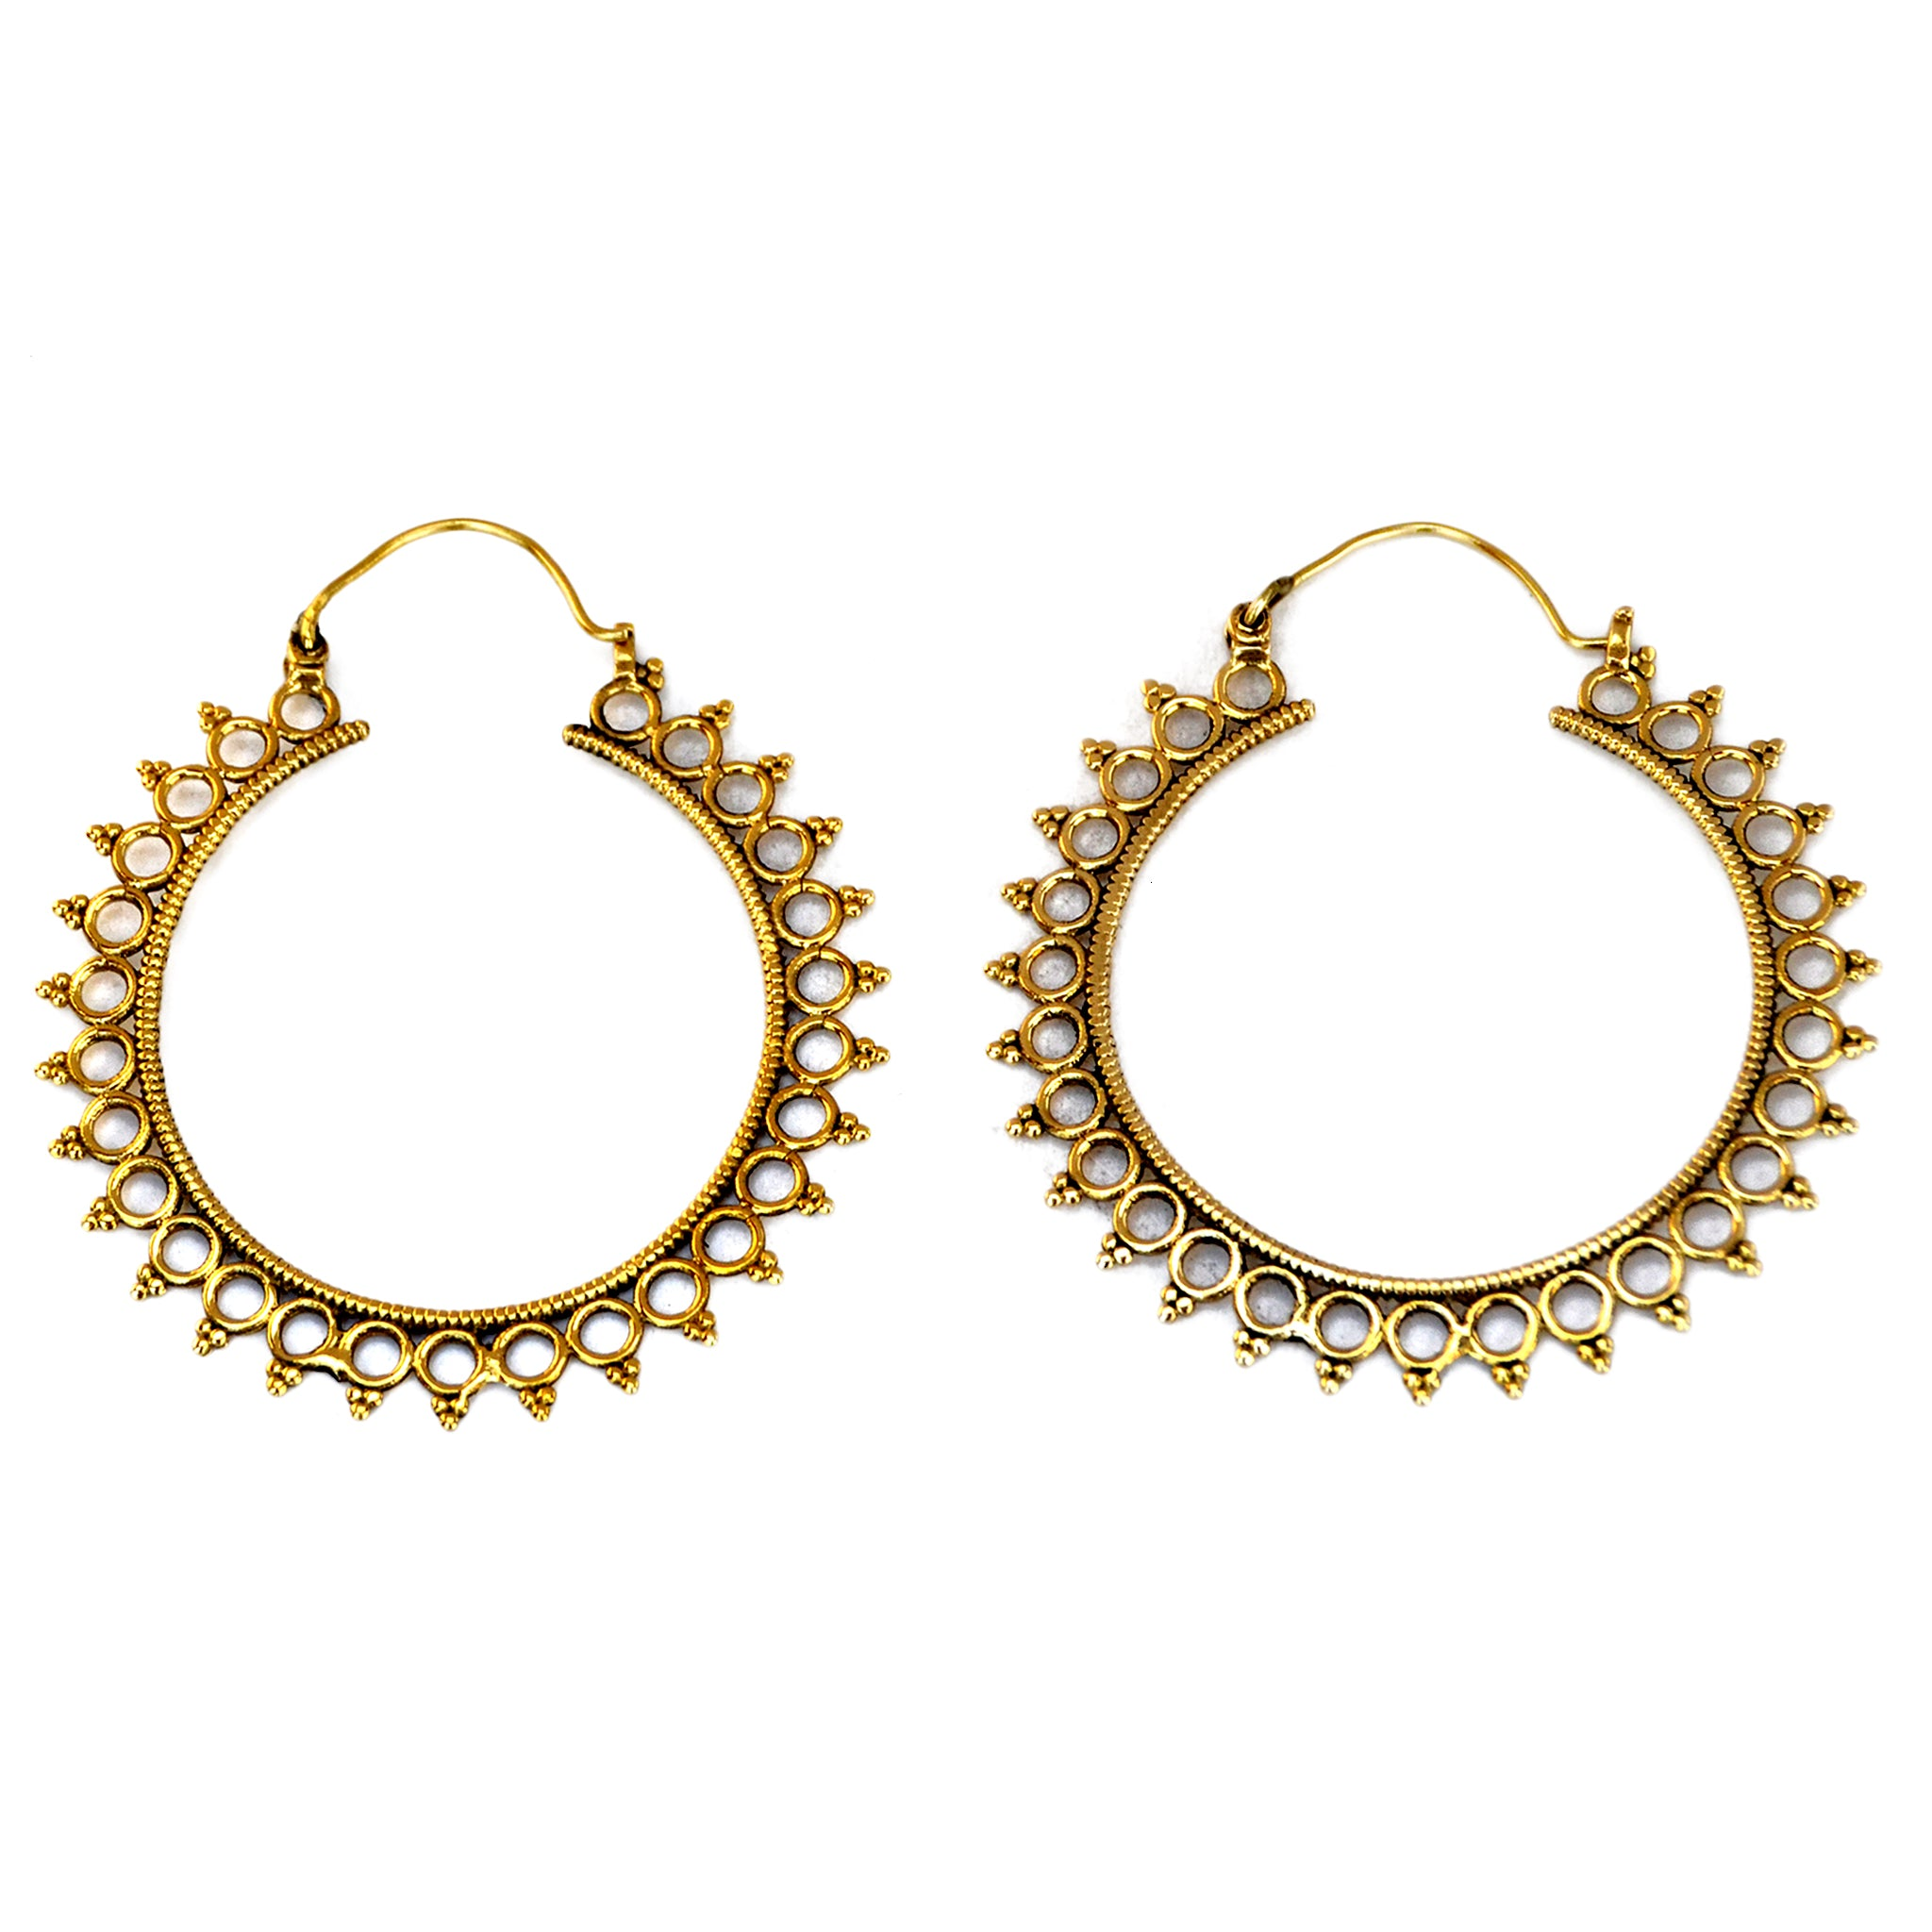 Banjara hoop earrings